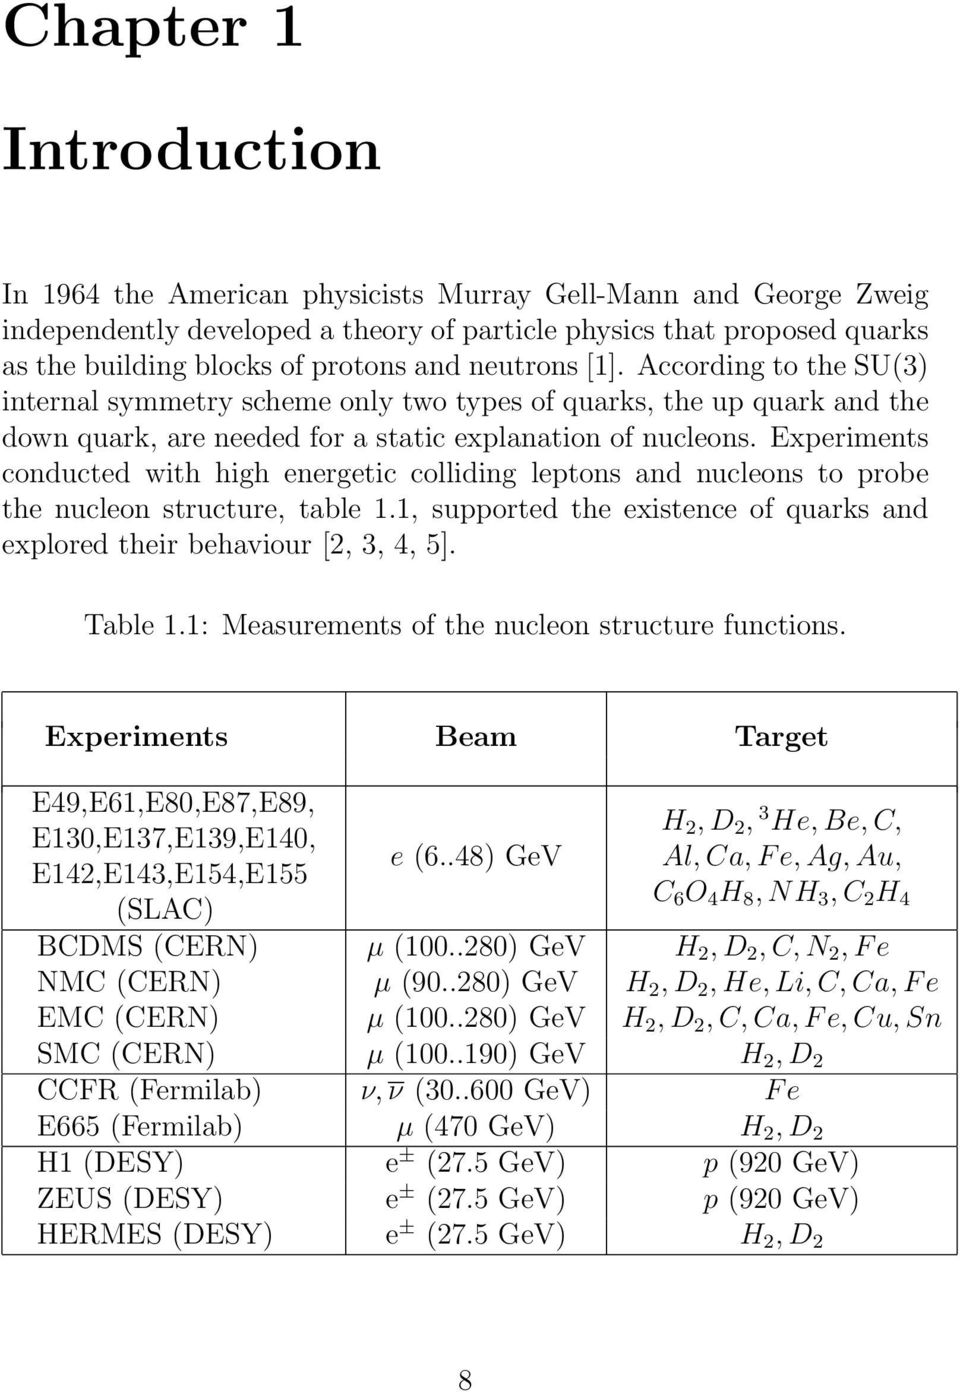 Experiments conducted with high energetic colliding leptons and nucleons to probe the nucleon structure, table 1.1, supported the existence of quarks and explored their behaviour [2, 3, 4, 5].